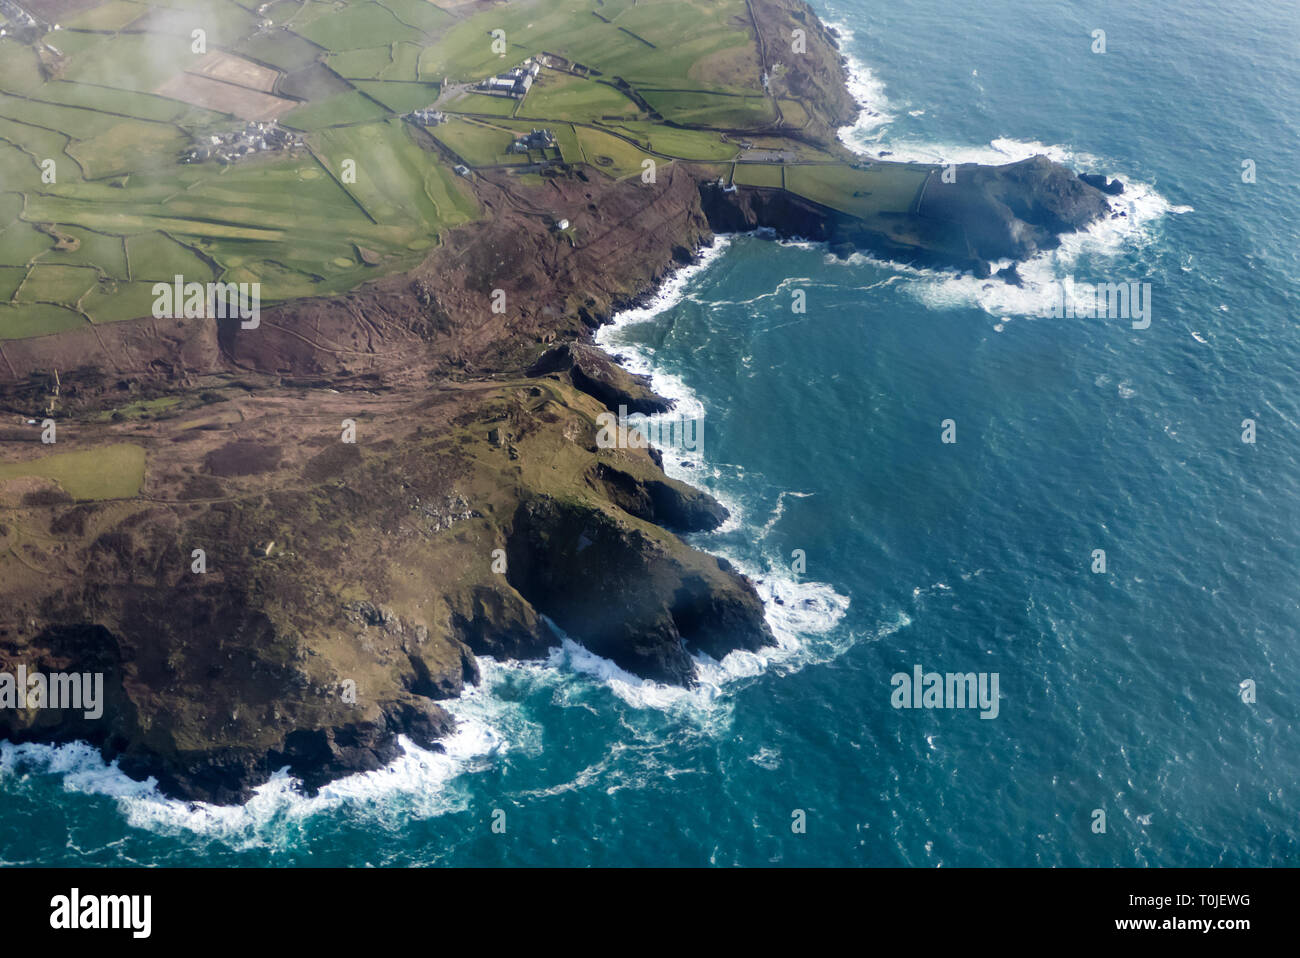 In the air over Cape Cornwall, Cornwall: Newquay to St. Mary's Skybus, DHC-6 Twin Otter - Stock Image